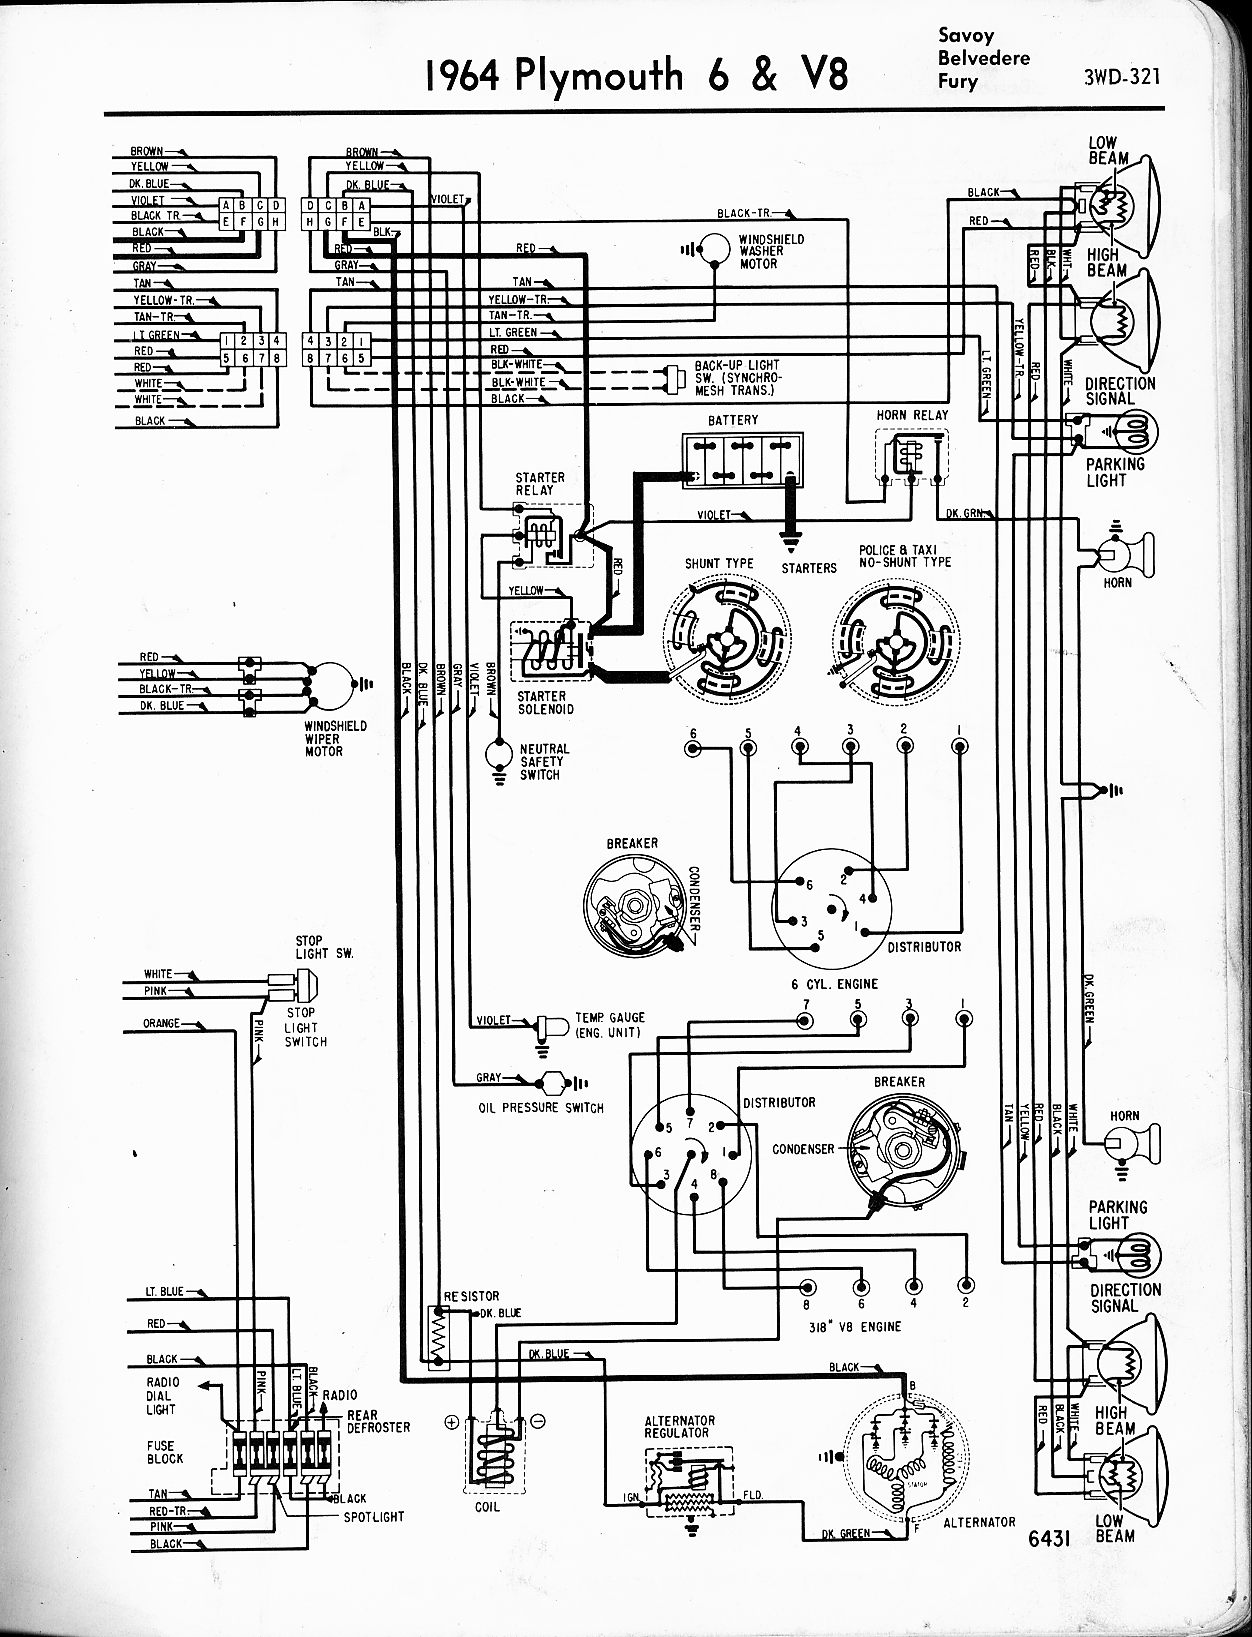 Kia Optima Wiring Diagram Free Download Wiring Diagram Schematic